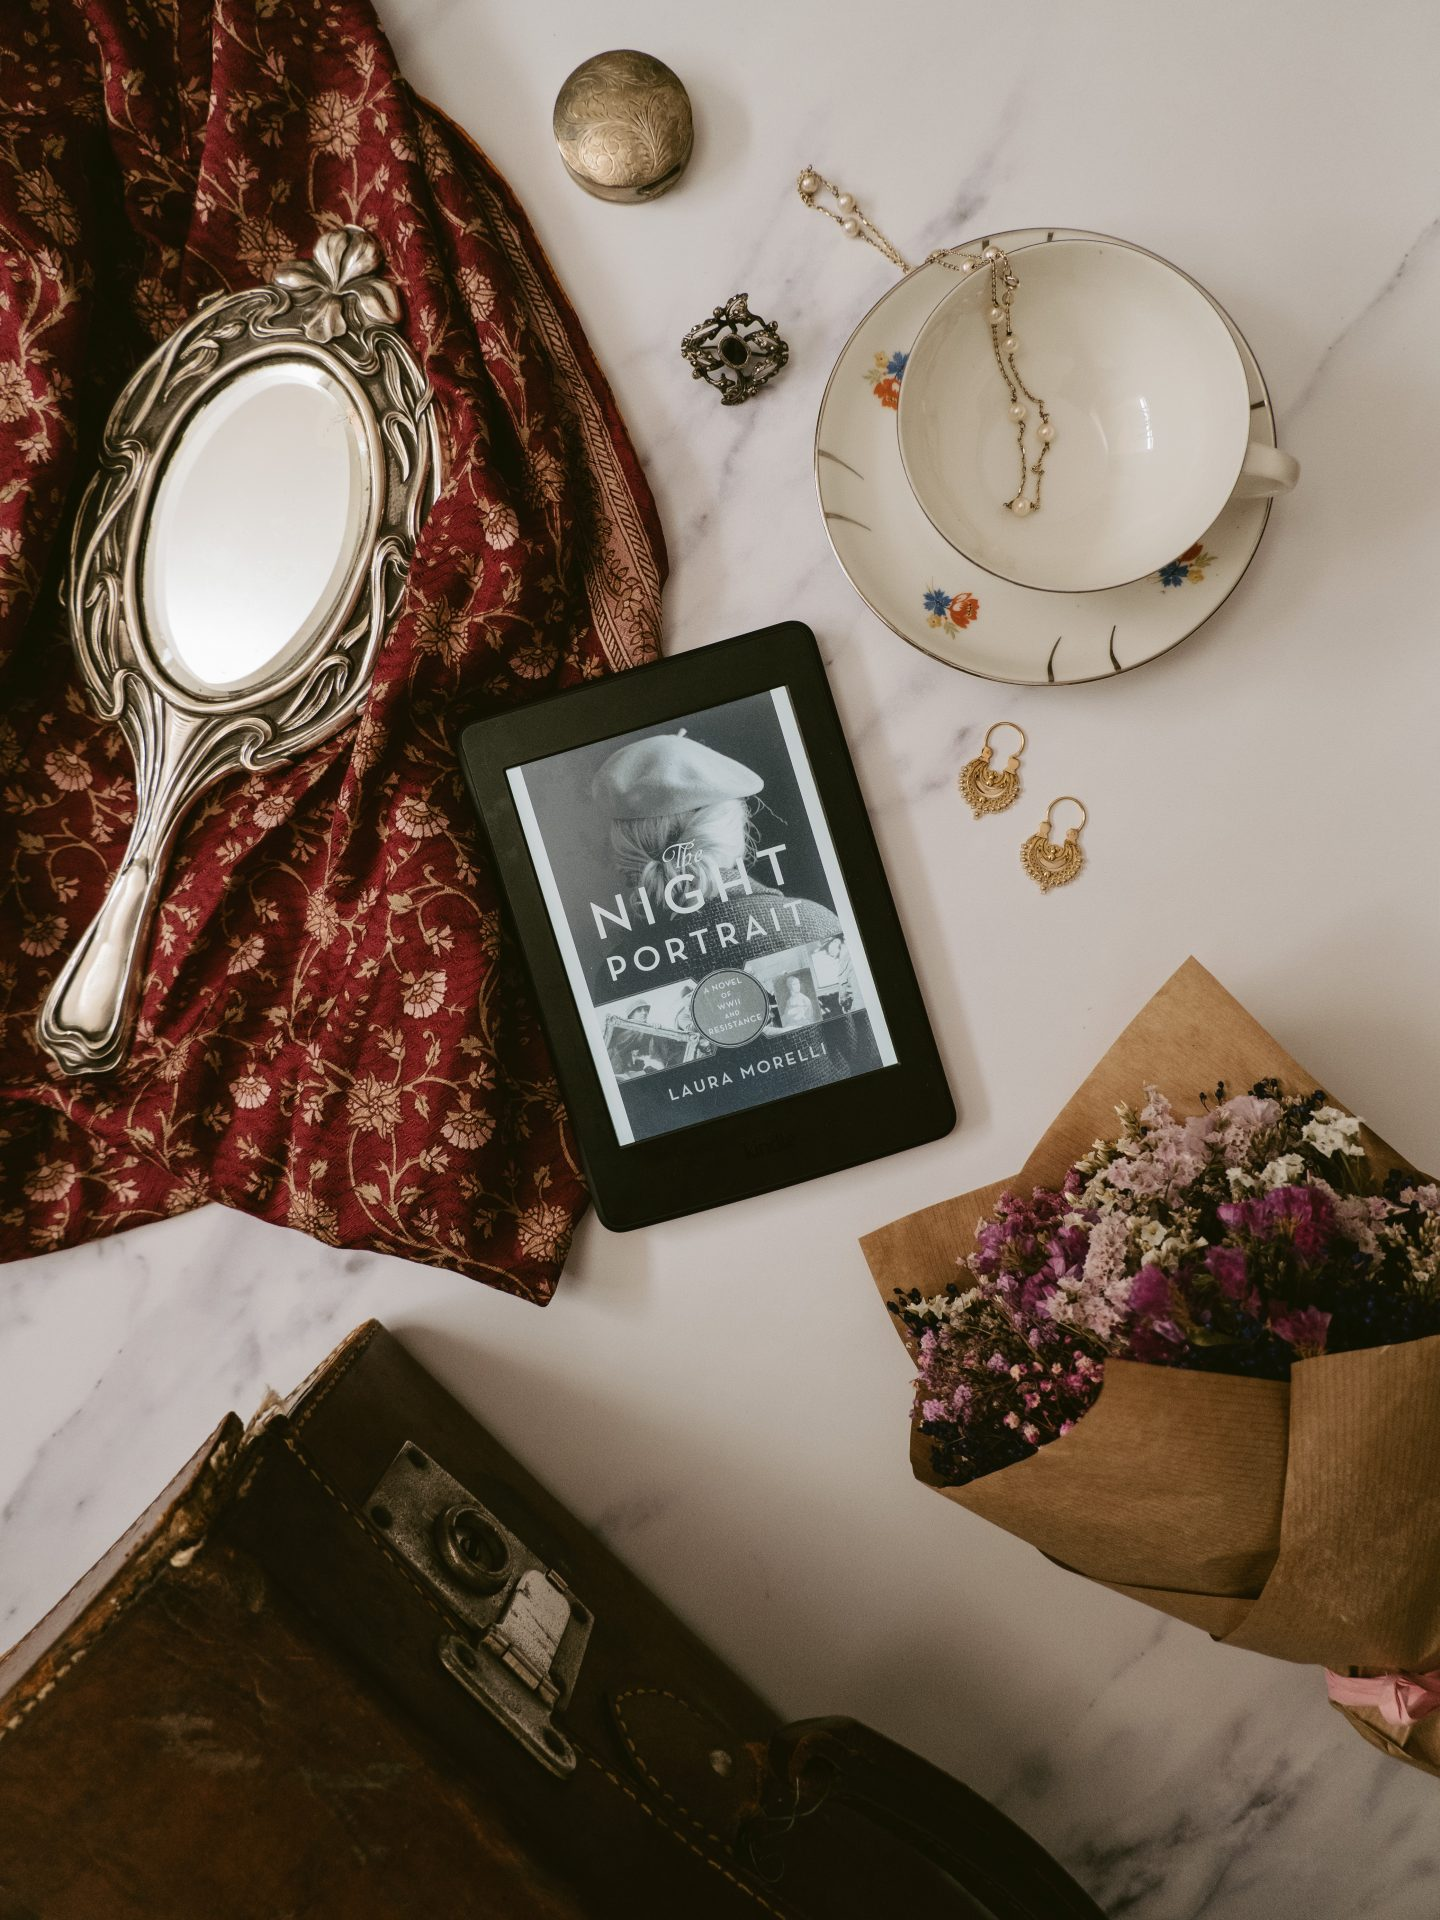 Book review – The Night Portrait